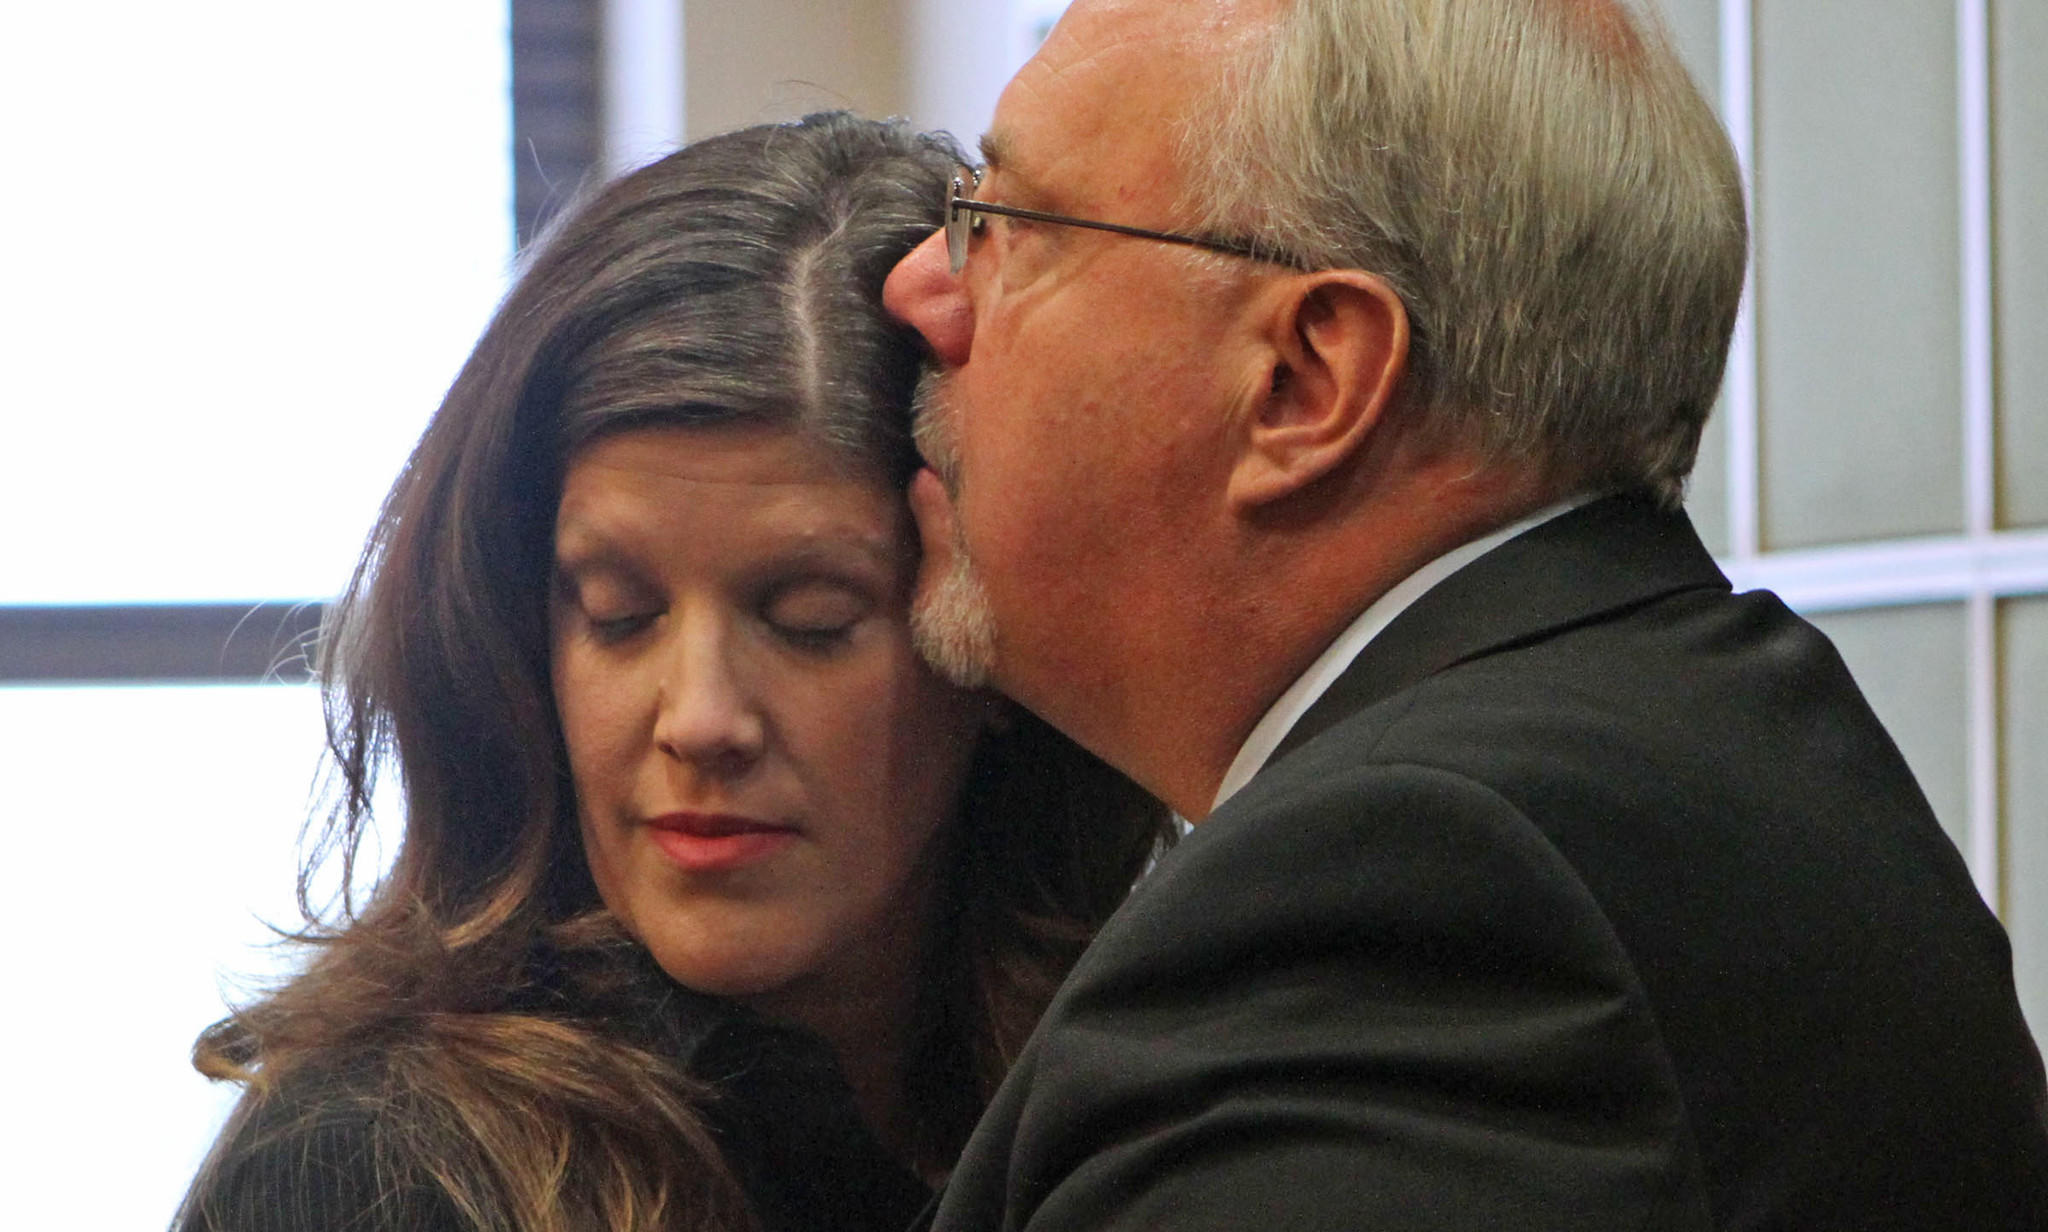 Jim Greer, right,ousted former Florida GOP chairman has an emotional moment with his wife wife Lisa before Greer was sentenced today in an Orlando court.